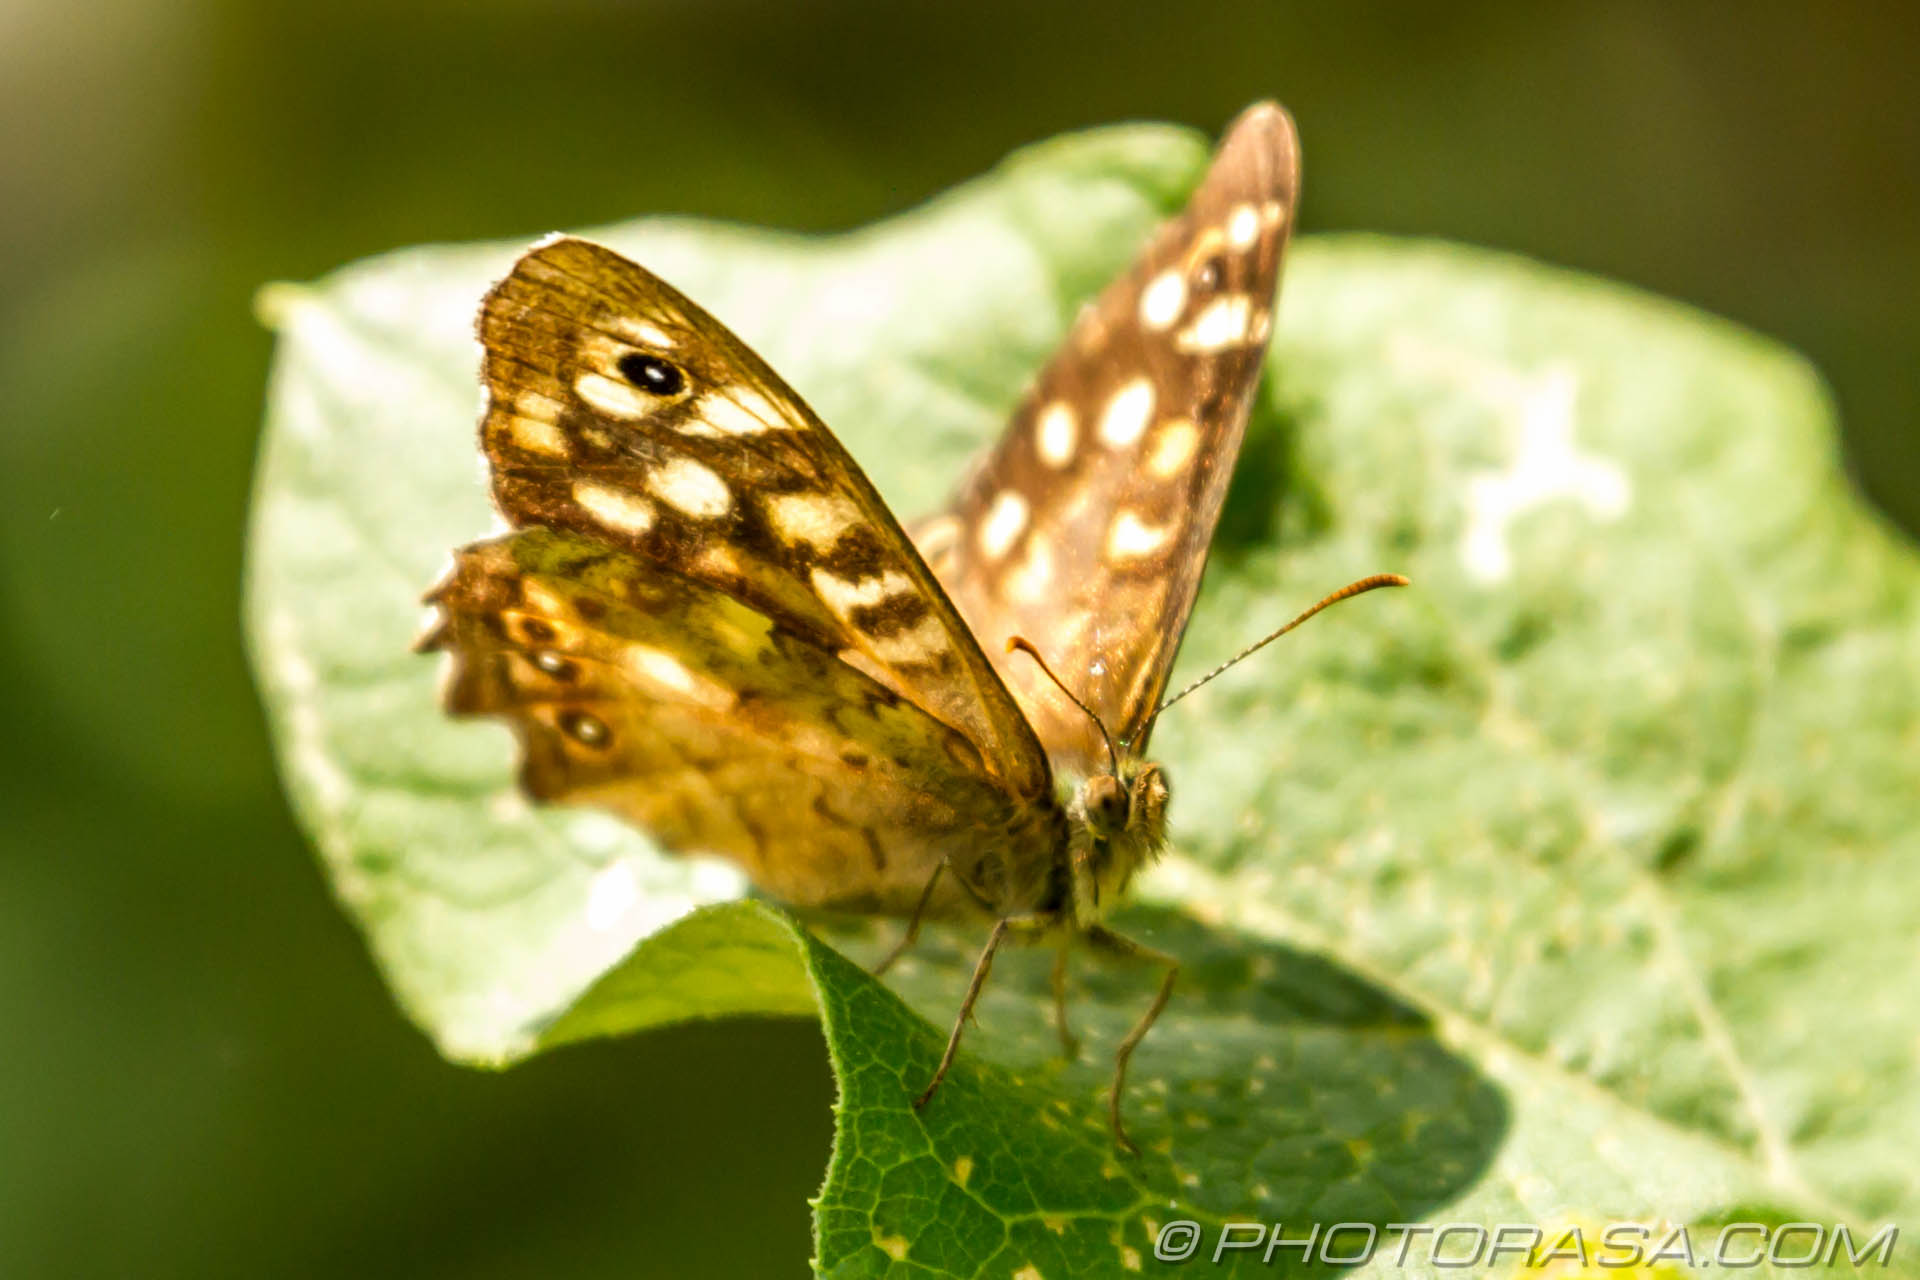 http://photorasa.com/speckled-wood-butterfly/speckled-wood-on-leaf/